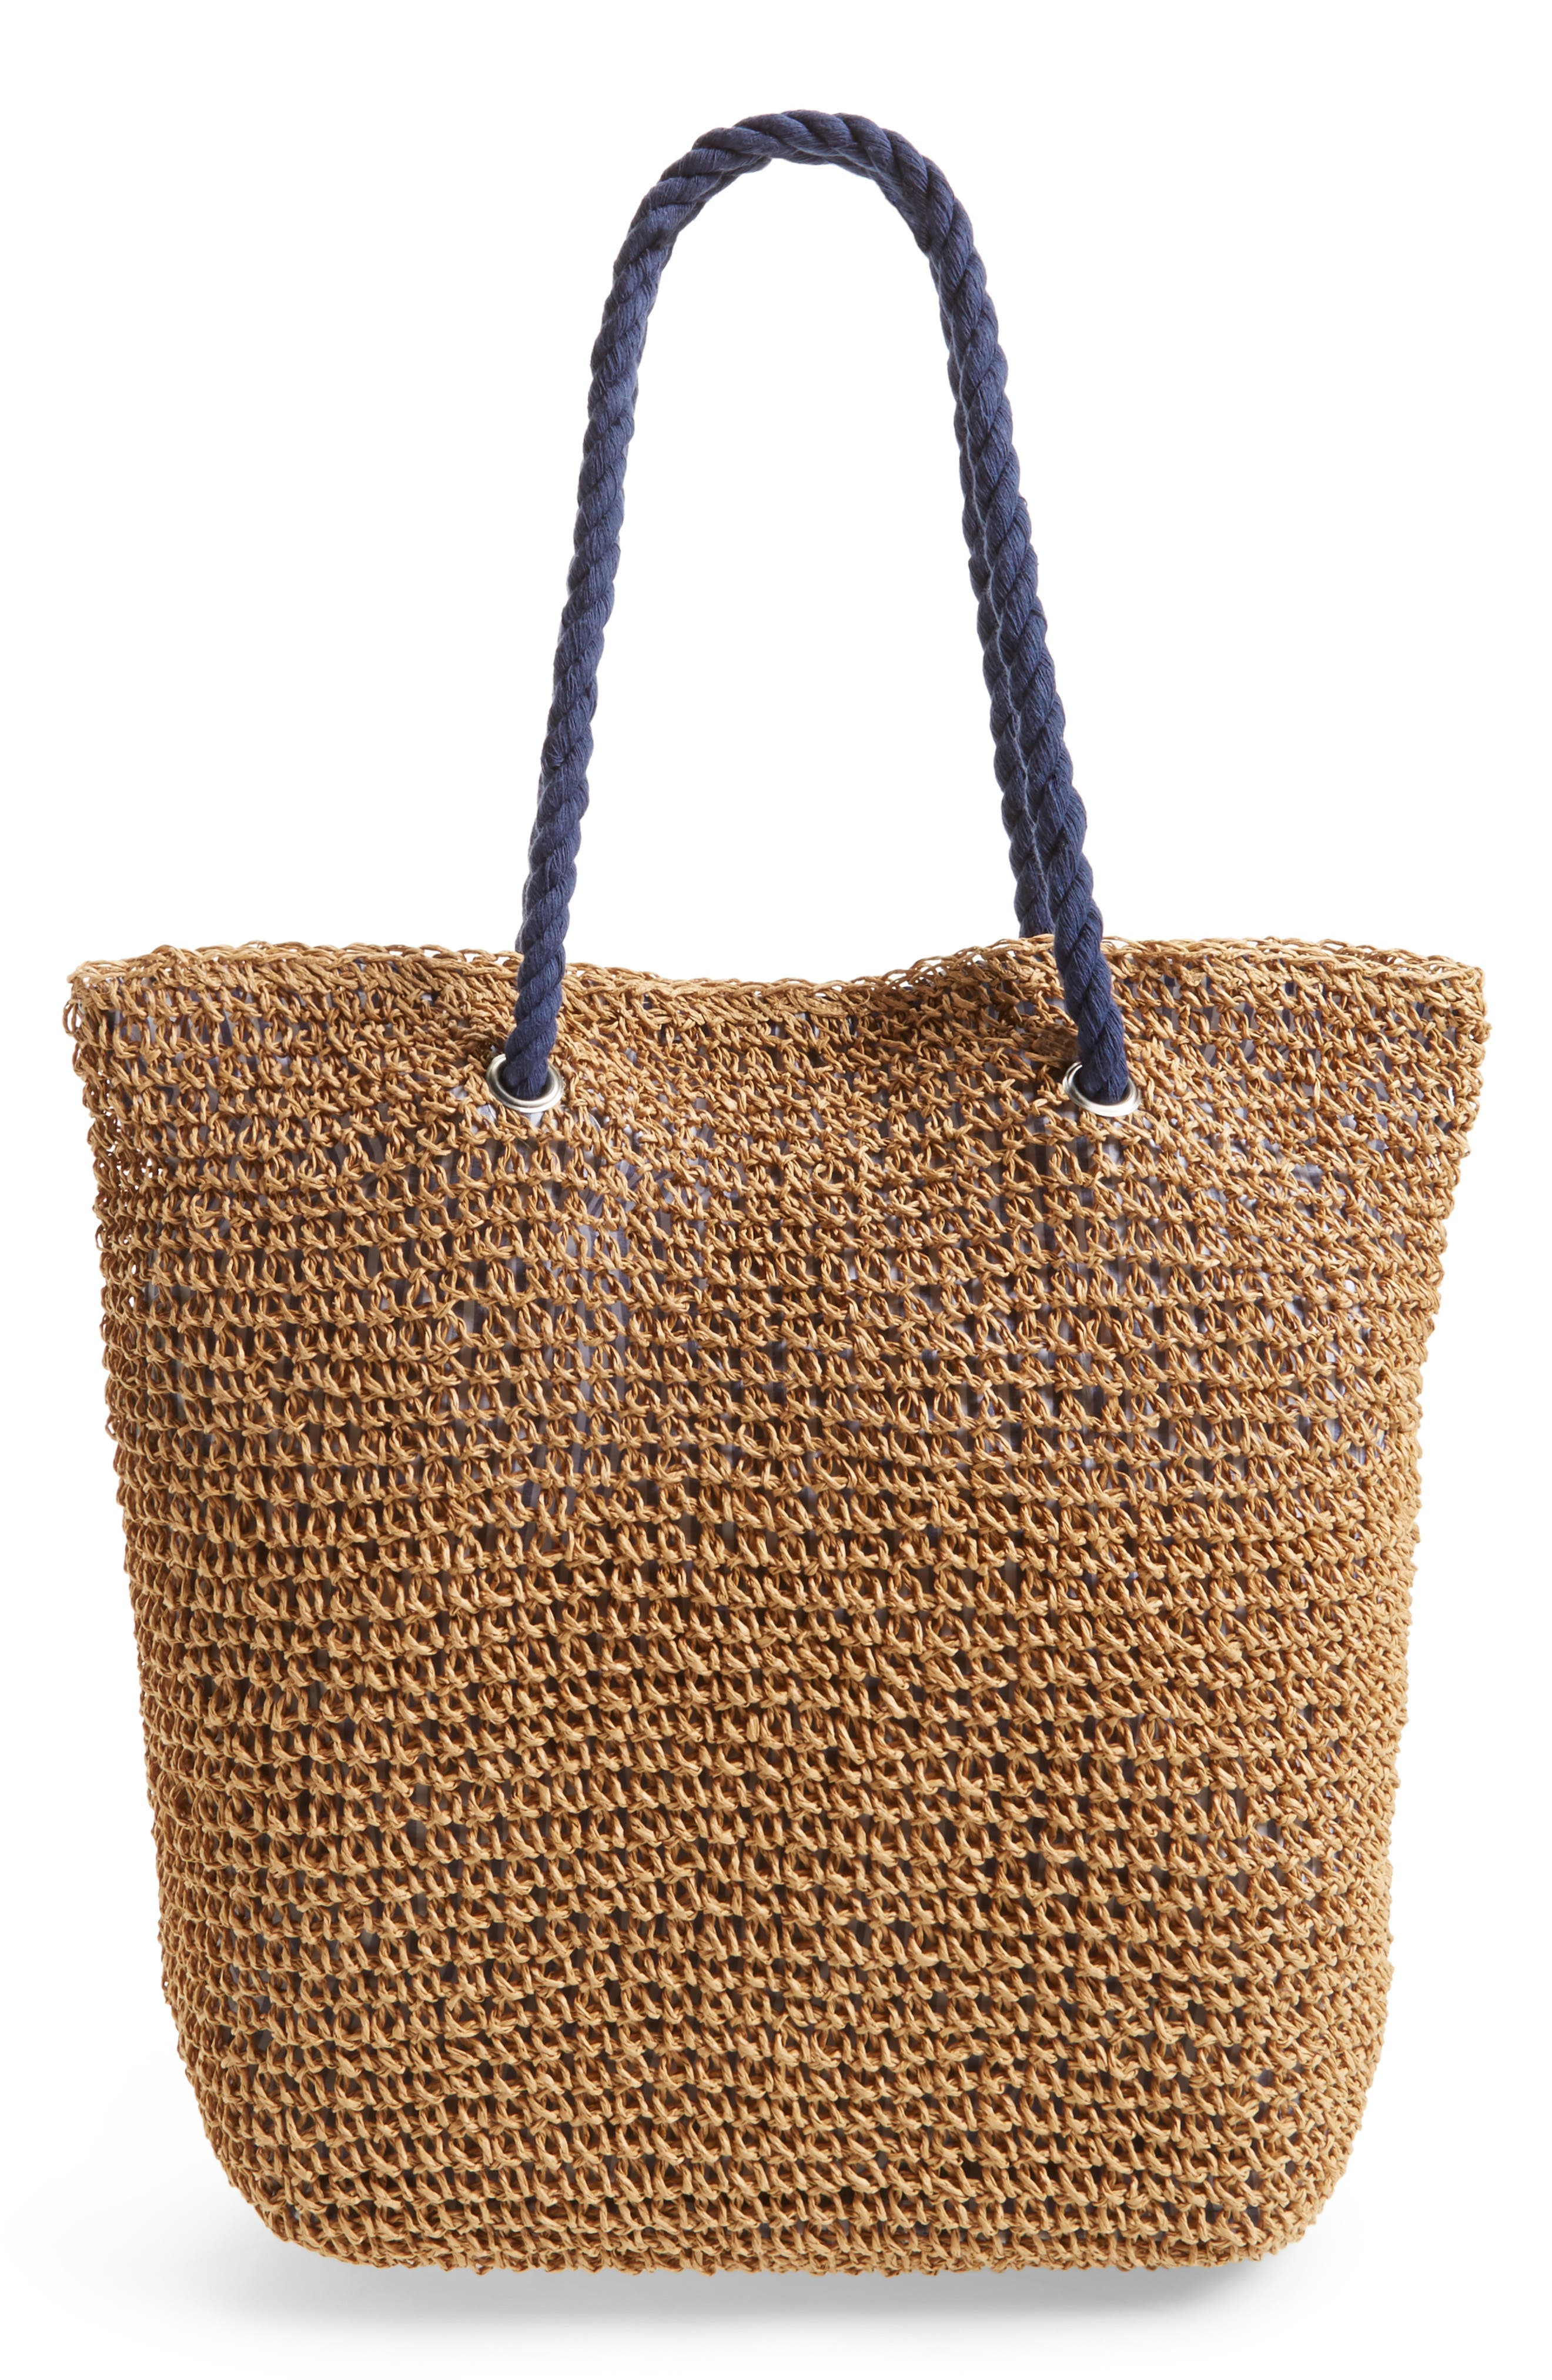 Rope & Straw Tote,                             Alternate thumbnail 3, color,                             200